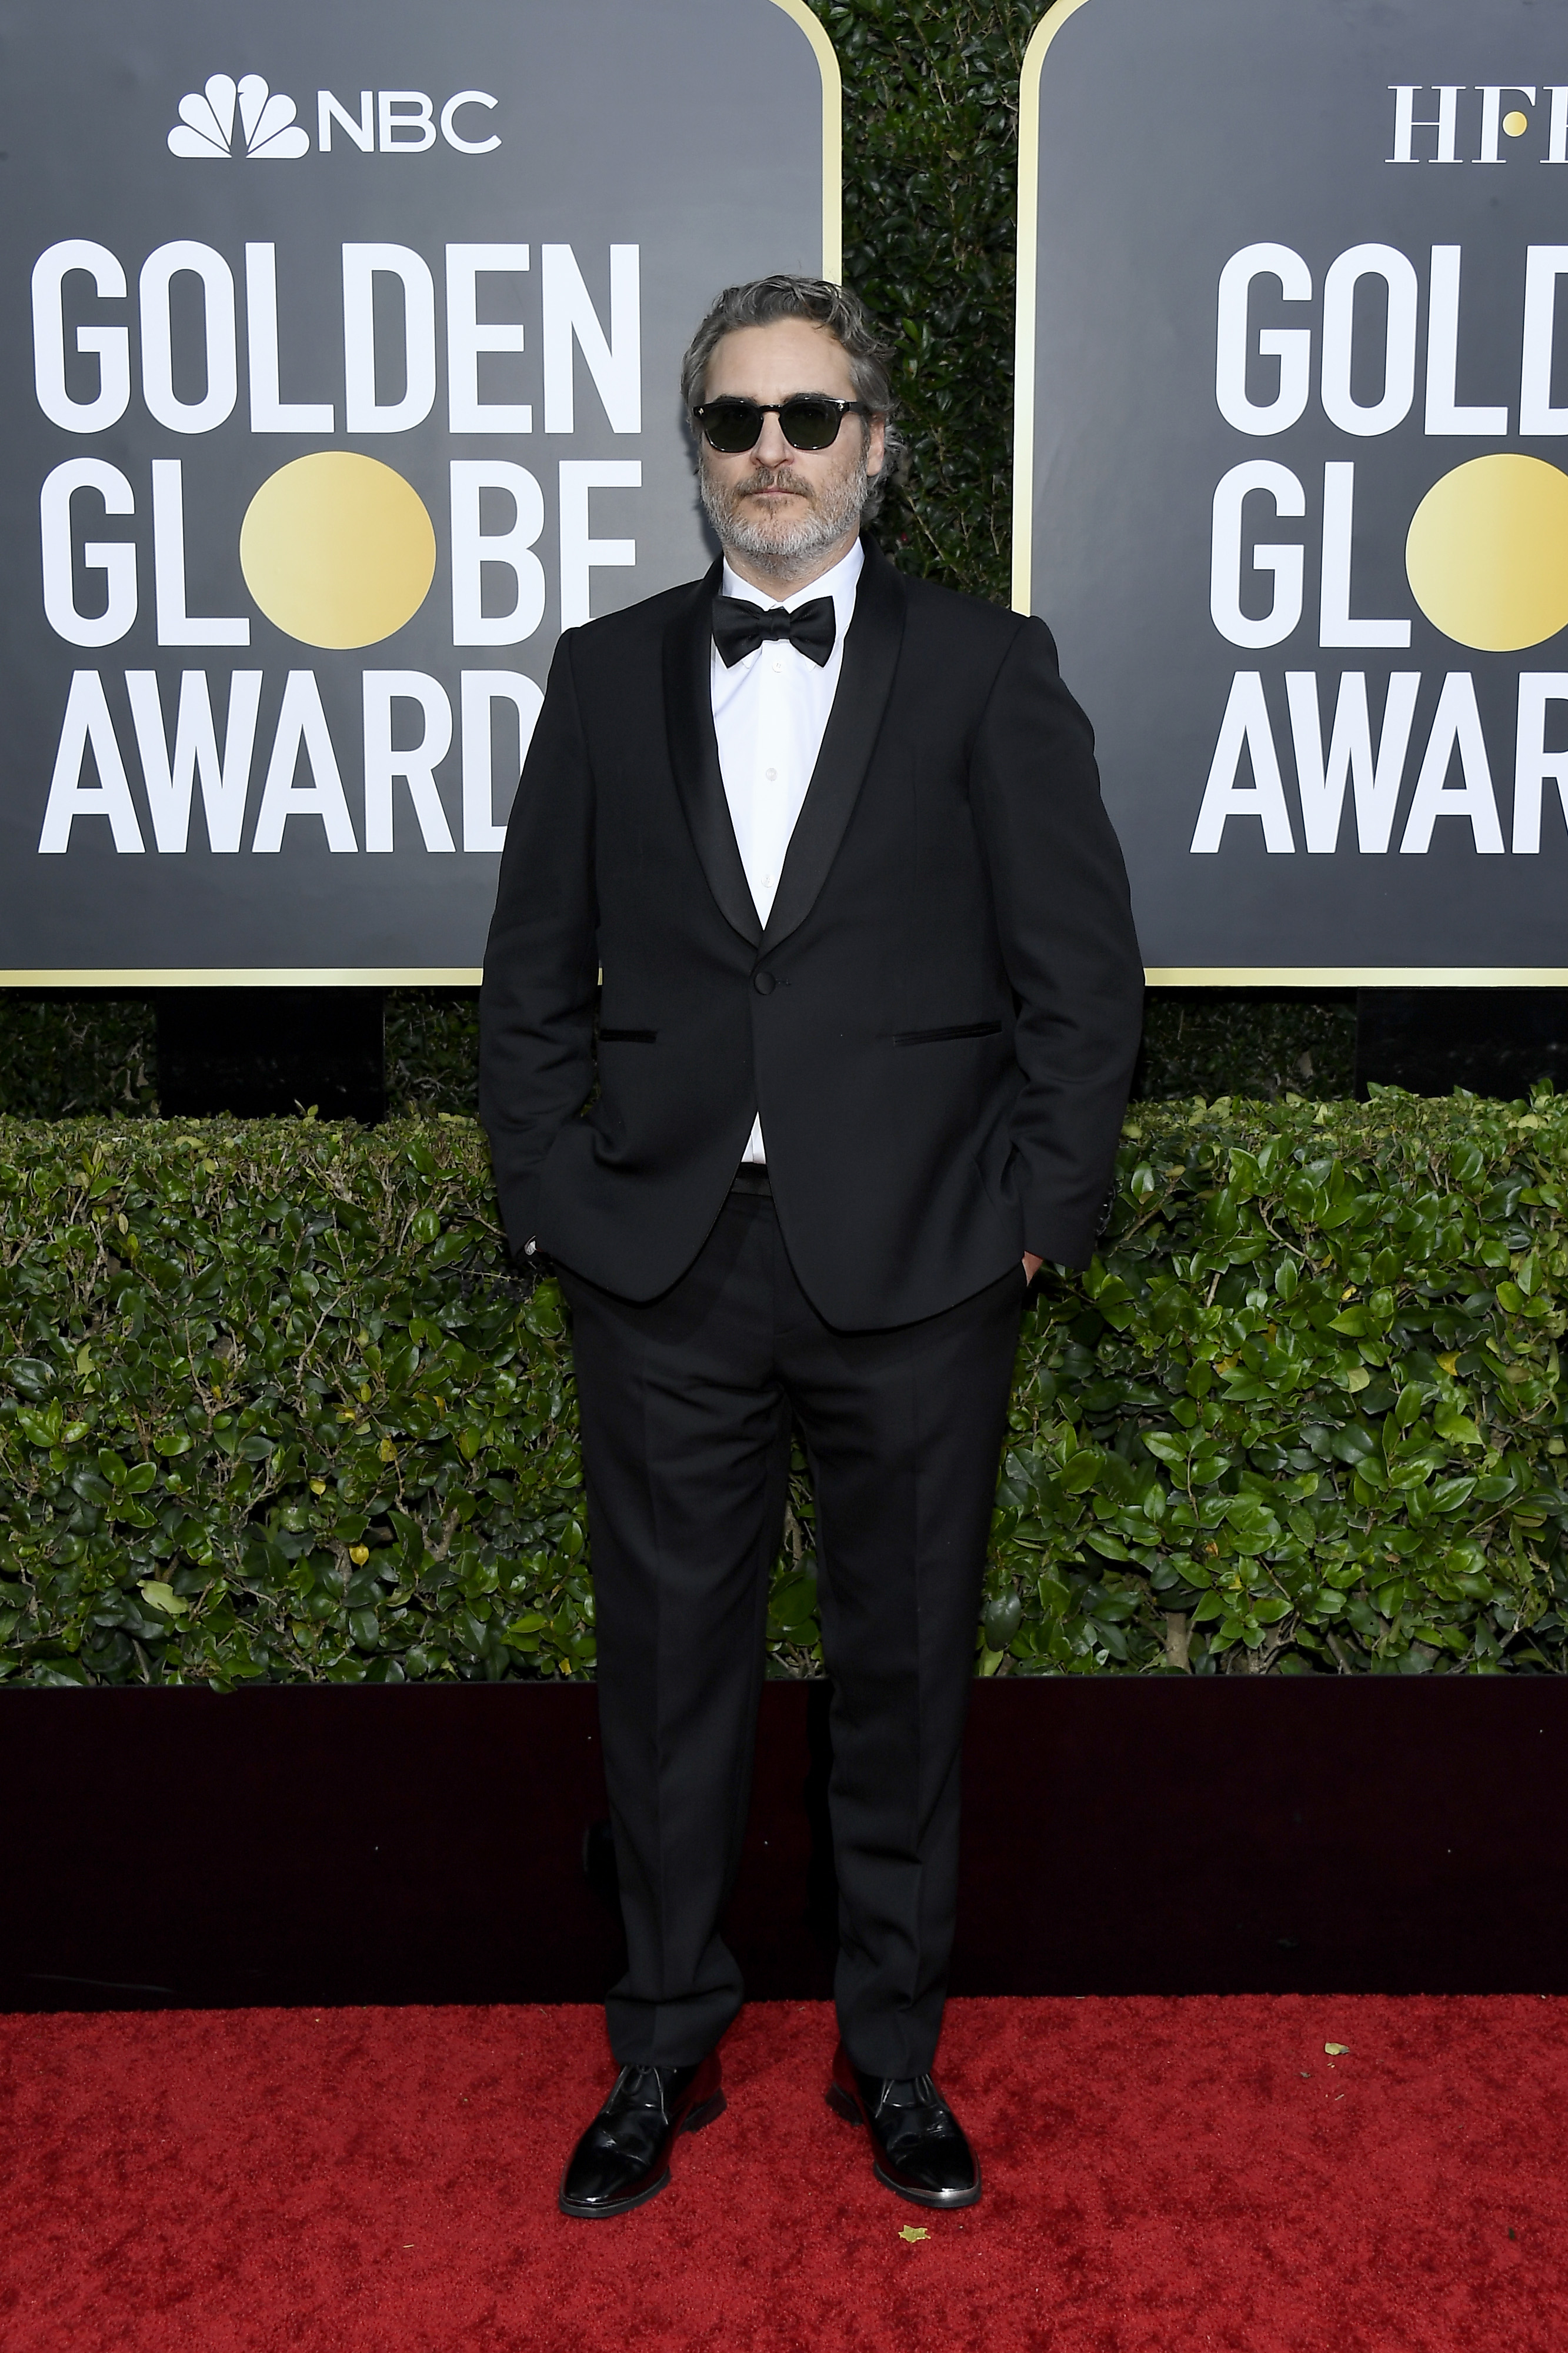 BEVERLY HILLS, CALIFORNIA - JANUARY 05: 77th ANNUAL GOLDEN GLOBE AWARDS -- Pictured: Joaquin Phoenix arrives to the 77th Annual Golden Globe Awards held at the Beverly Hilton Hotel on January 5, 2020. -- (Photo by: Kevork Djansezian/NBC/NBCU Photo Bank via Getty Images)